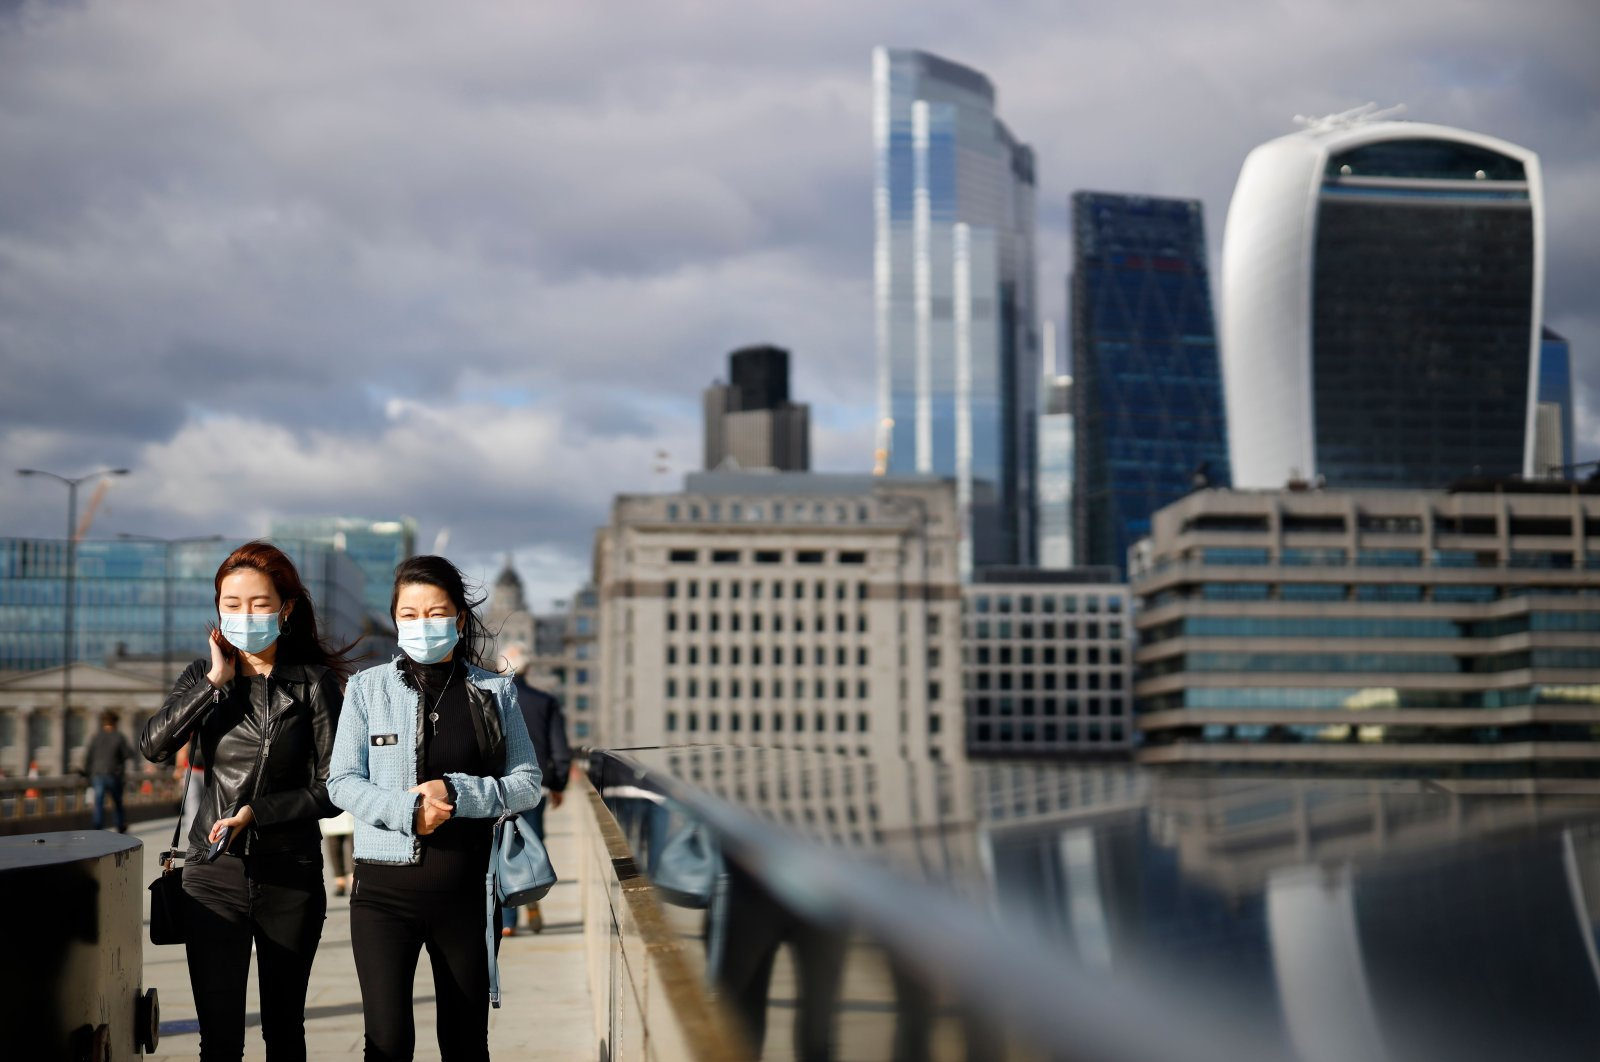 Pedestrians wear facemasks due to the novel coronavirus COVID-19 pandemic as they cross London Bridge in central London on Sept. 25, 2020. (AFP Photo)